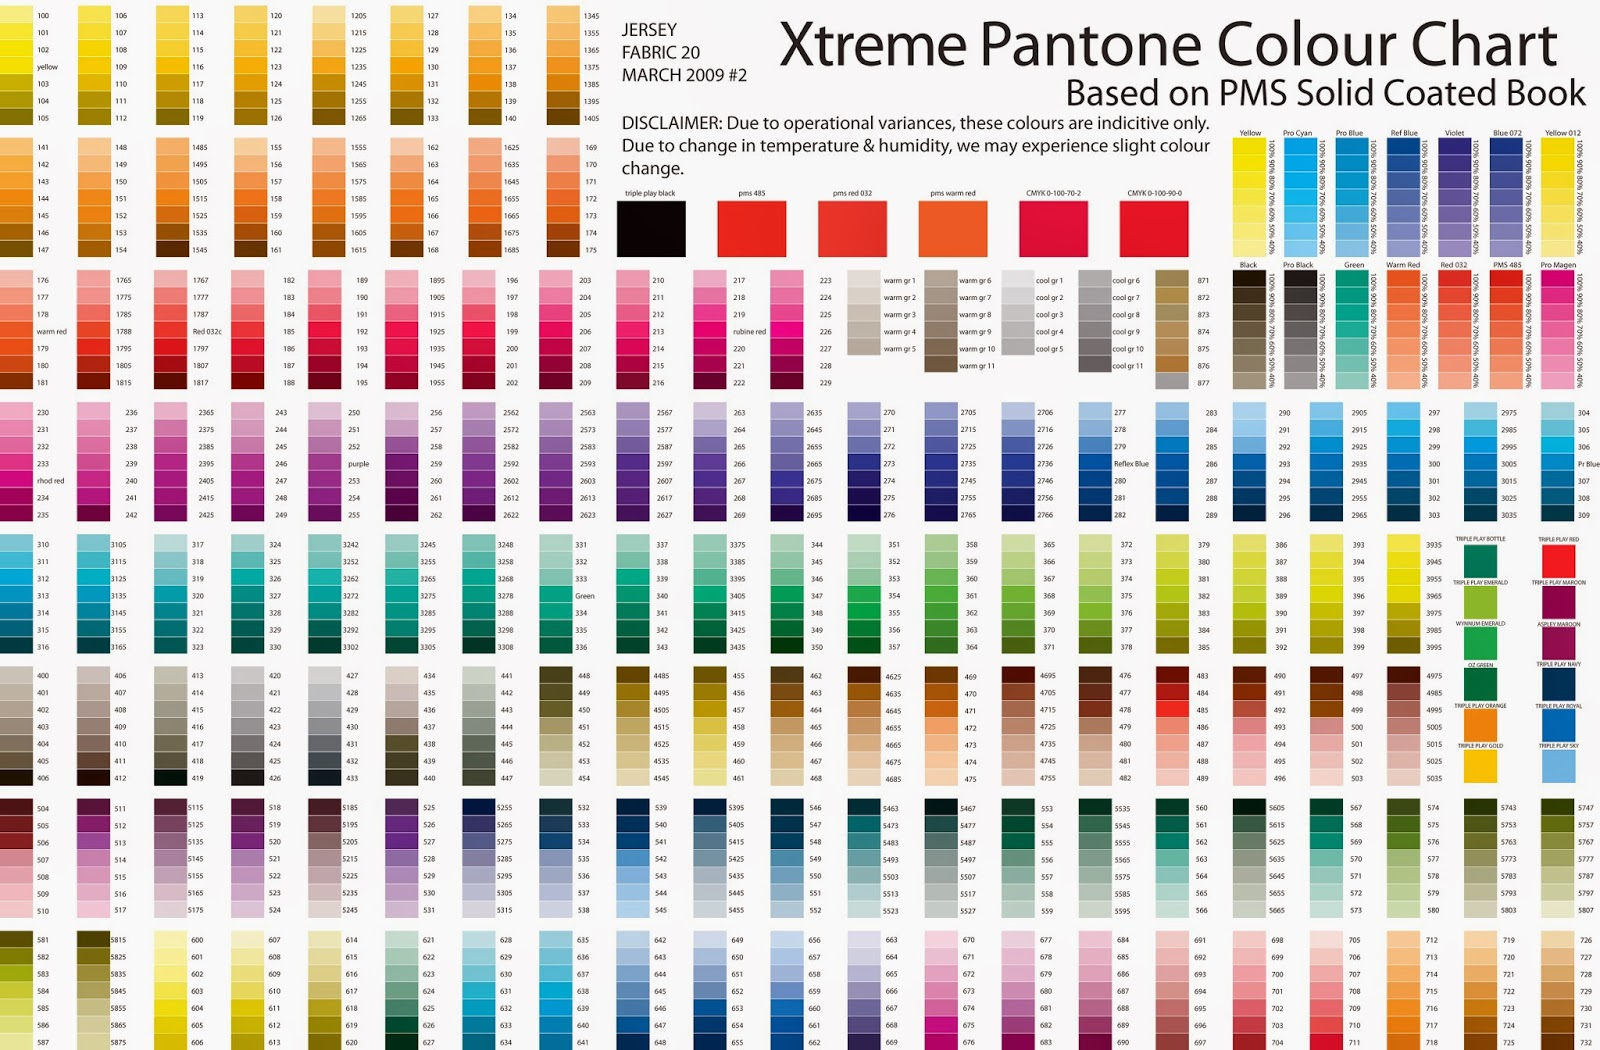 Pantone color chart pdf tuboebeerengine pantone color chart pdf nvjuhfo Choice Image